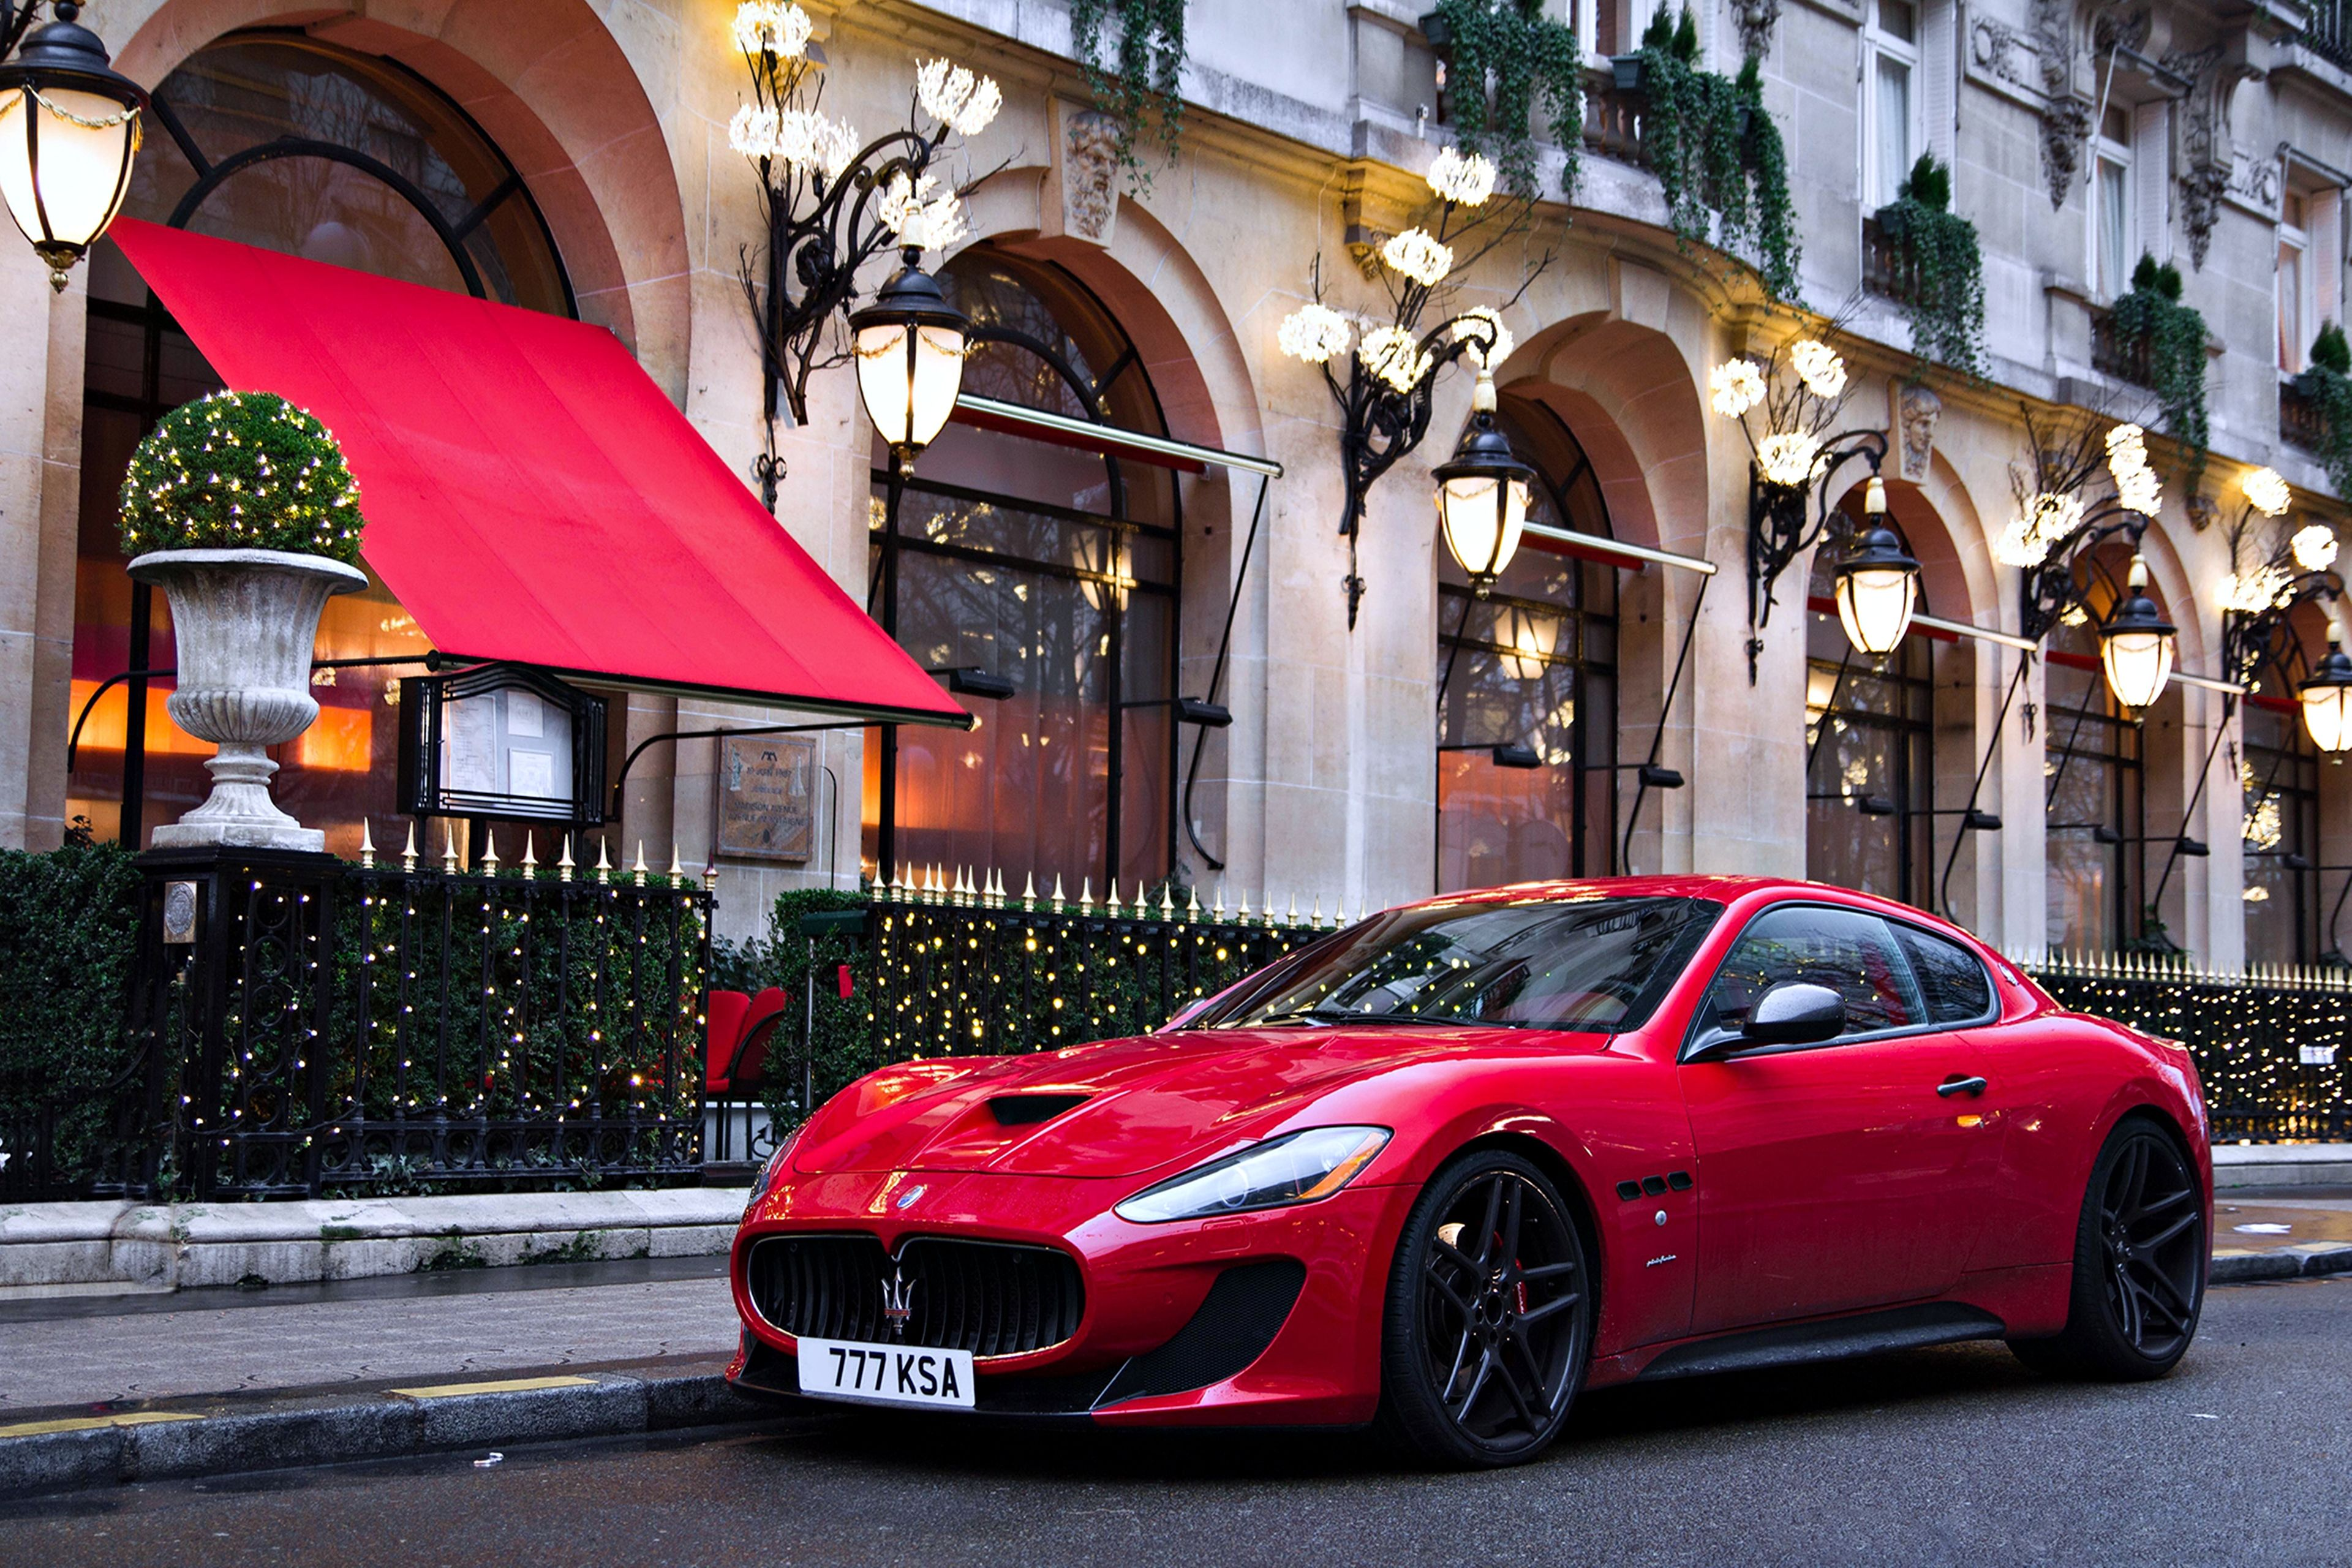 313 maserati hd wallpapers | backgrounds - wallpaper abyss | images